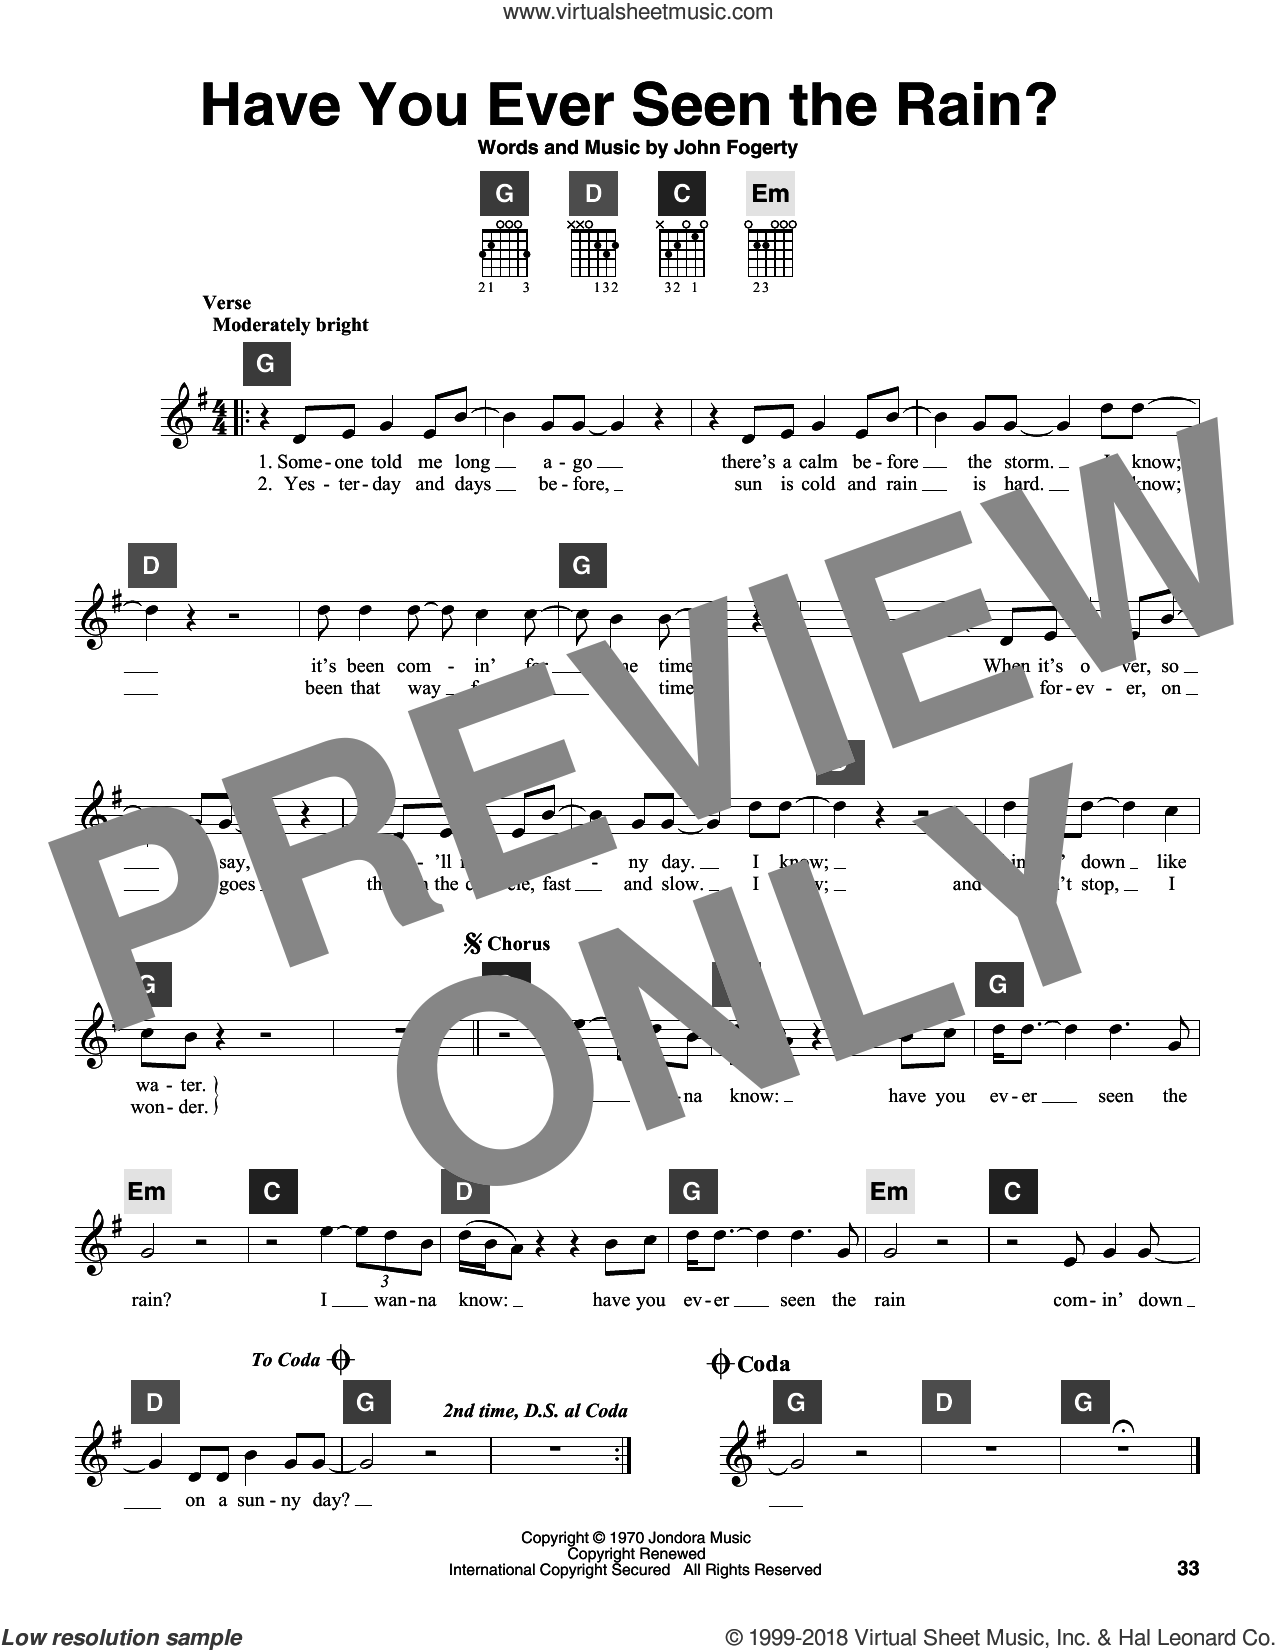 Have You Ever Seen The Rain? sheet music for guitar solo (ChordBuddy system) by Creedence Clearwater Revival and John Fogerty, intermediate guitar (ChordBuddy system). Score Image Preview.